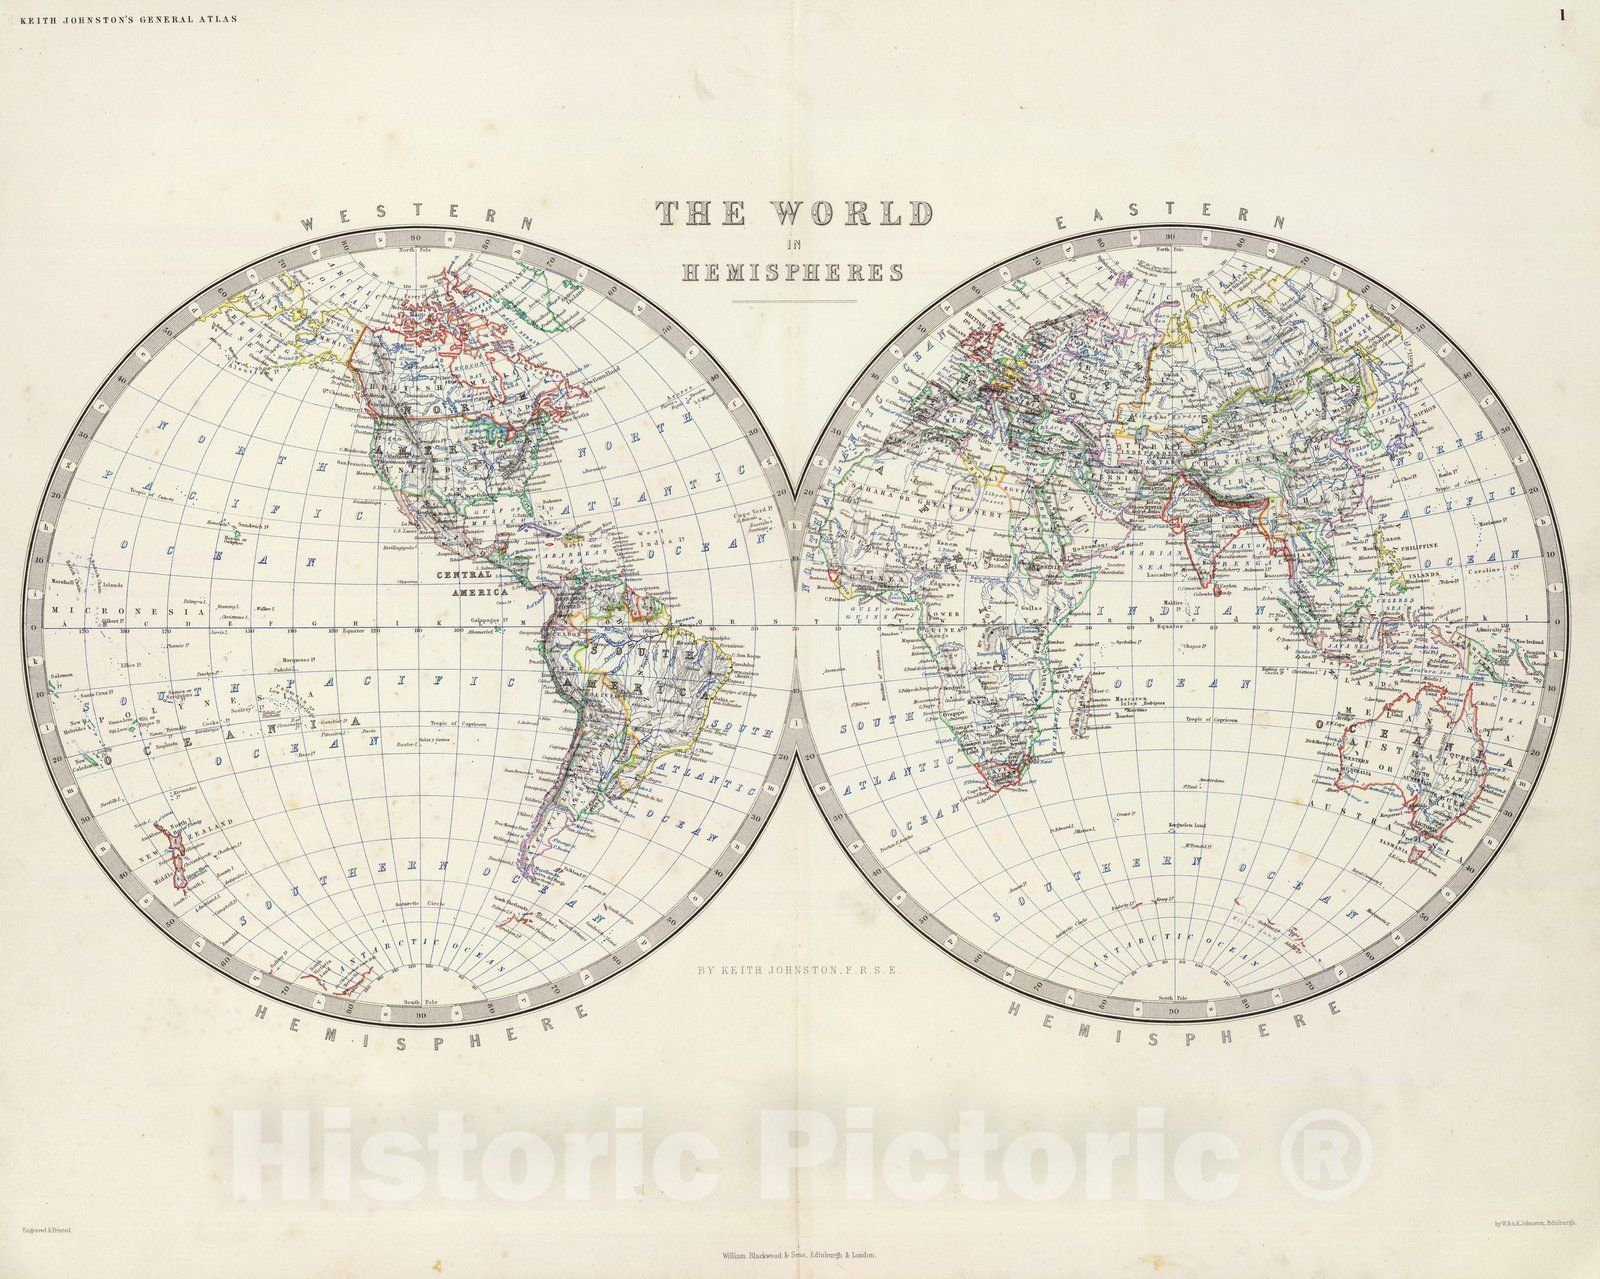 <p>The world in hemispheres, by Keith Johnston, F.R.S.E. Engraved & printed by W. & A.K. Johnston, Edinburgh. William Blackwood & Sons, Edinburgh & London, (1861) | The royal atlas of modern geography, exhibiting, in a series of entirely original and authentic maps, the present condition of geographical discovery and research in the several countries, empires, and states of the world by Alexander Keith Johnston ... With a special index to each map. William Blackwood and Sons, Edi